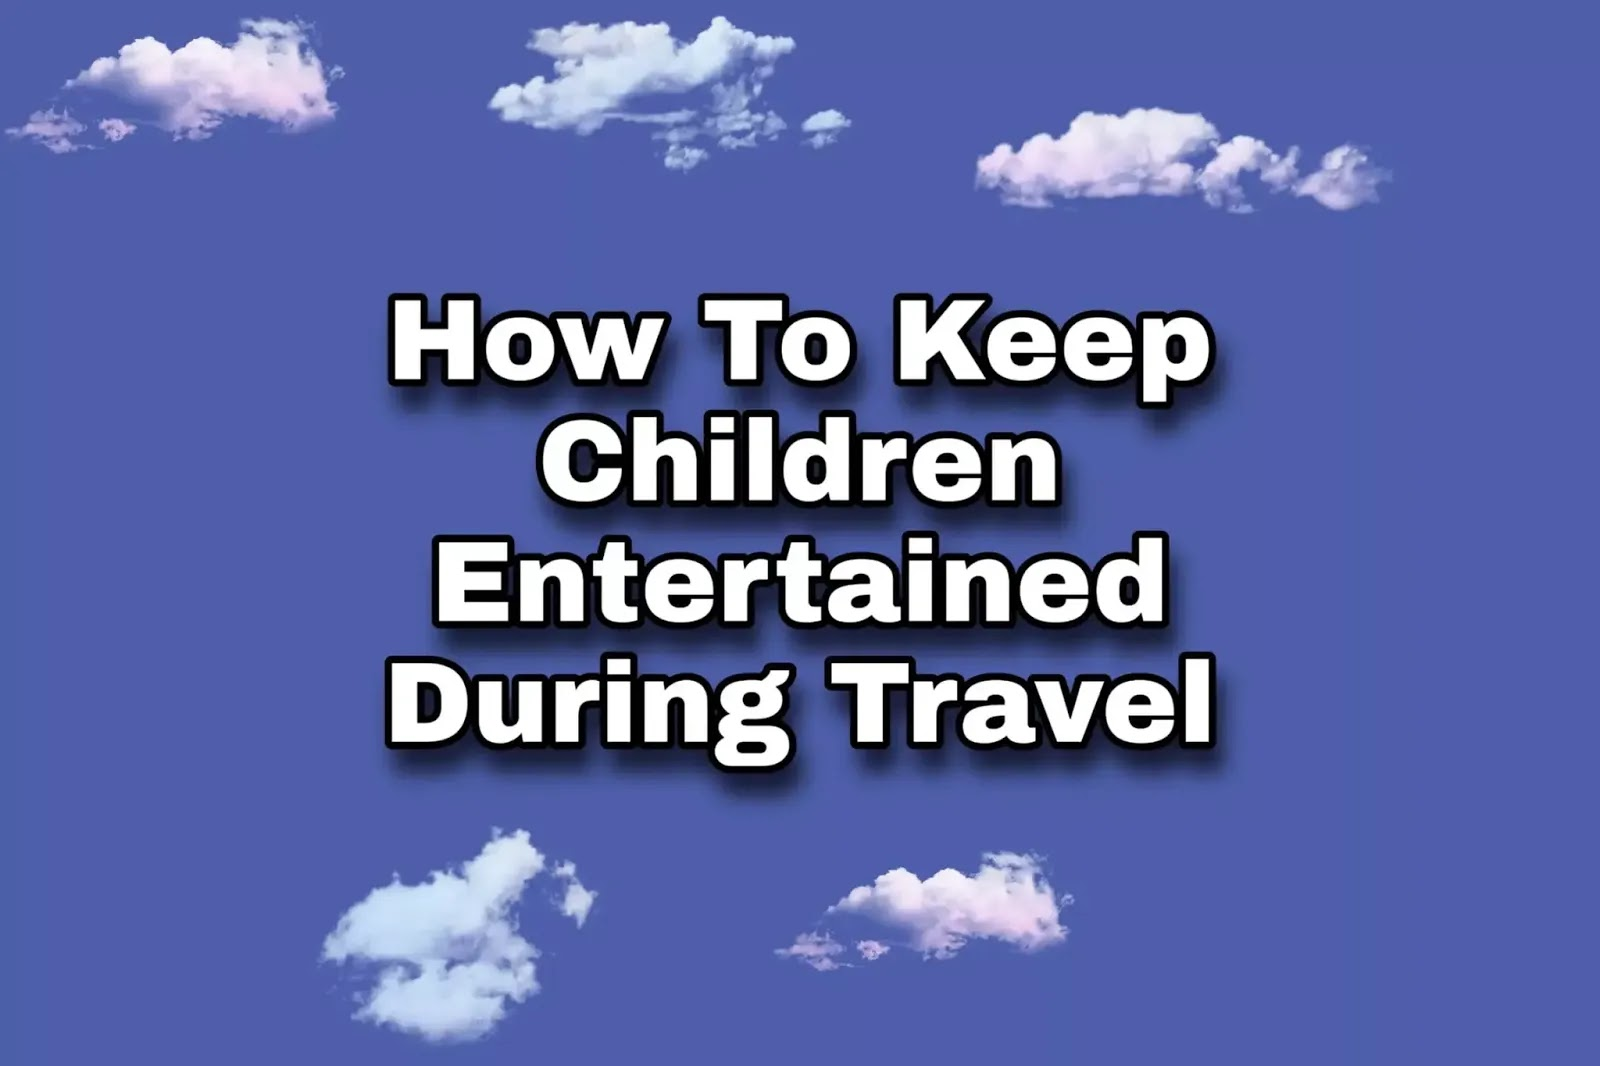 How To Keep Children Entertained During Travel